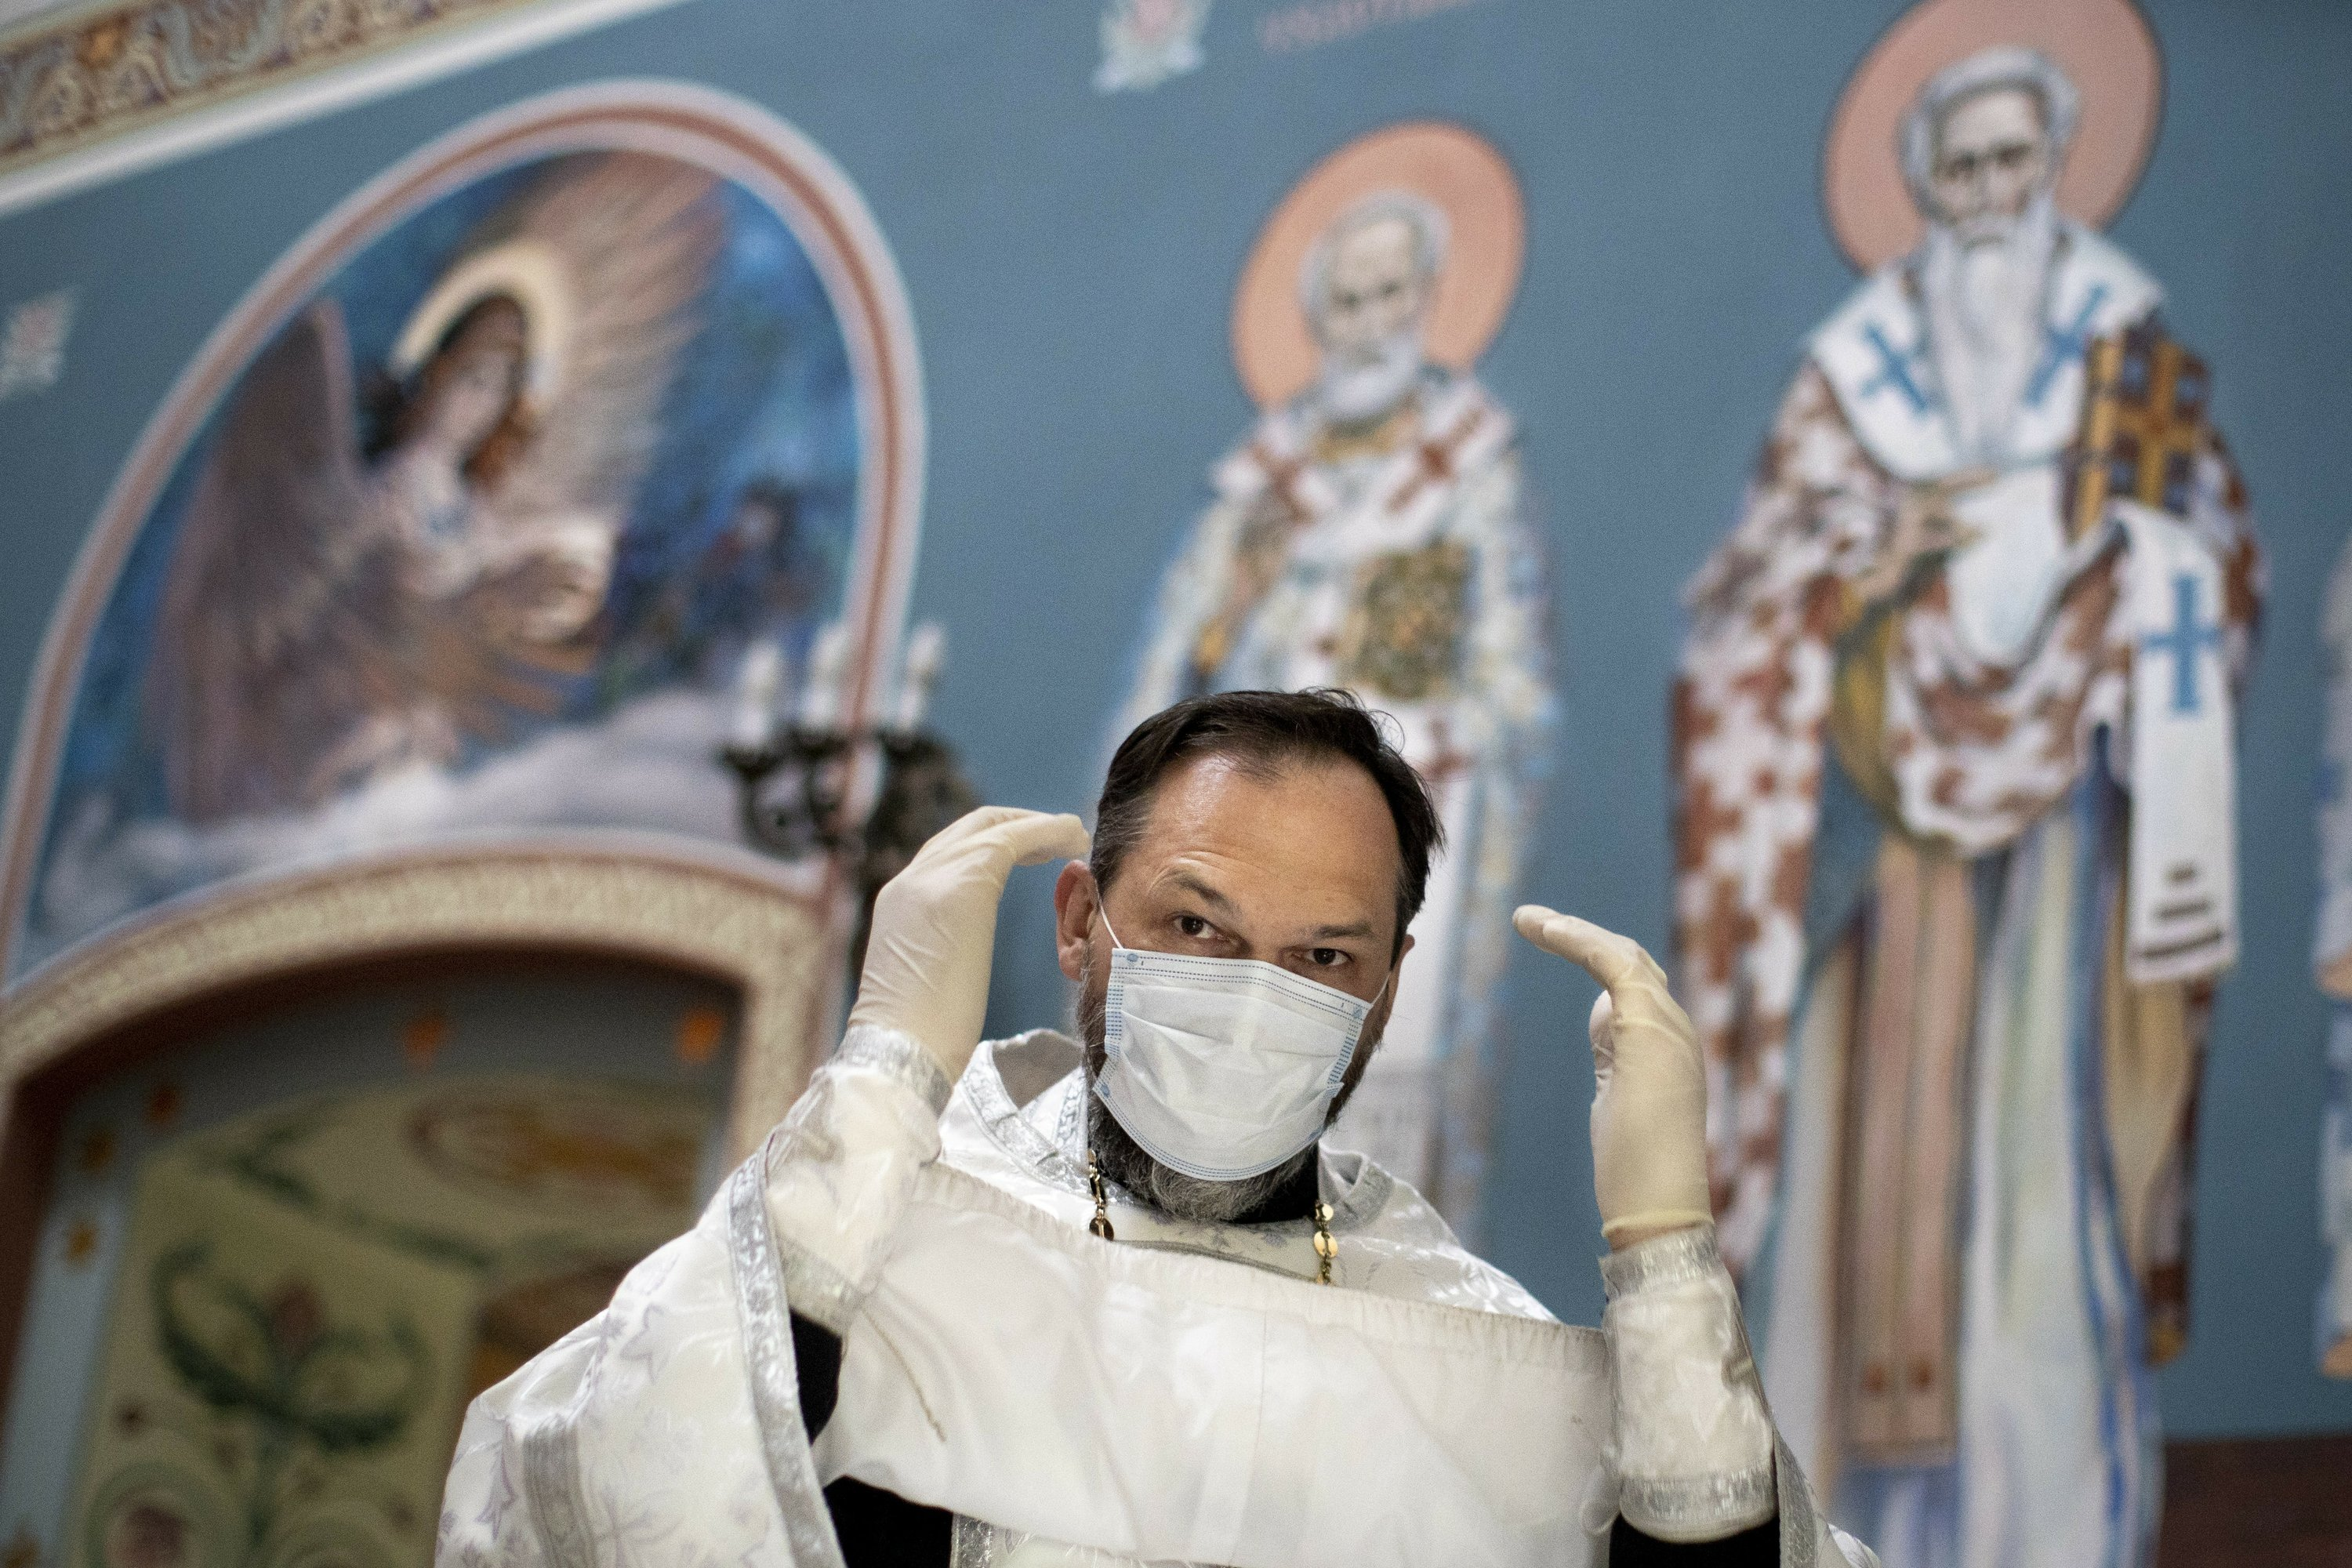 Russian Orthodox priest tends to Moscow's COVID-19 patients thumbnail